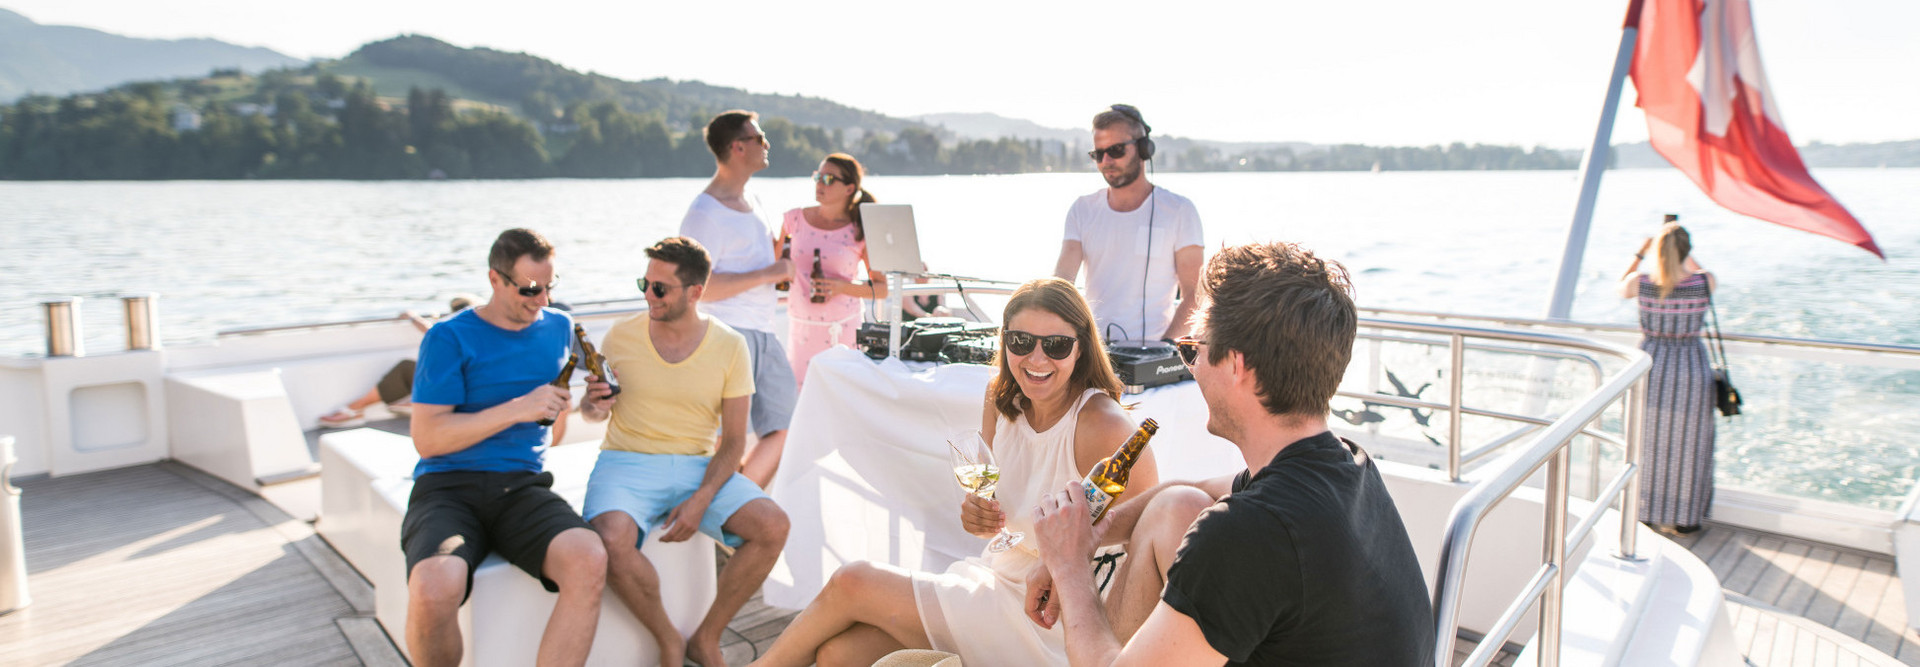 Experience and enjoy a culinary cruise and musical summer evening on the motorboat Diamant.